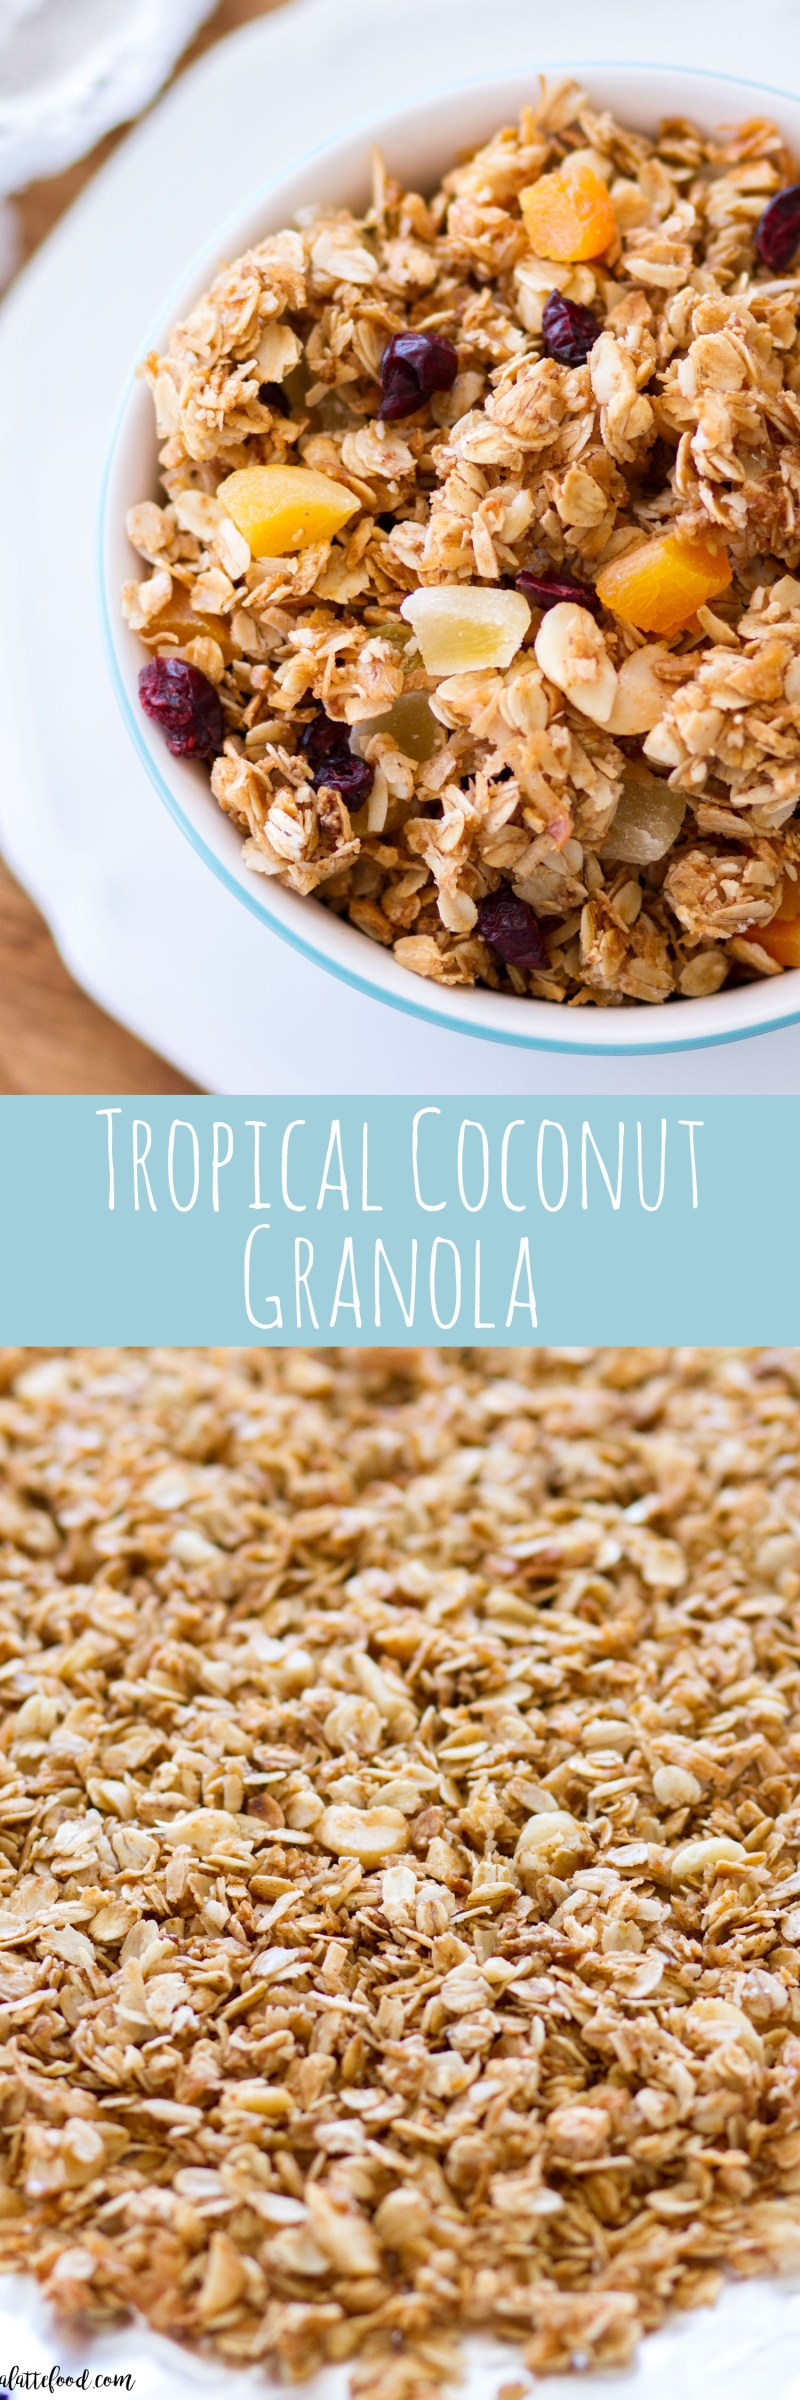 This homemade tropical coconut granola recipe is so simple to make, and is packed with coconut (and coconut oil!), golden raisins, dried pineapple, dried cranberries, dried apricots and macadamia nuts!